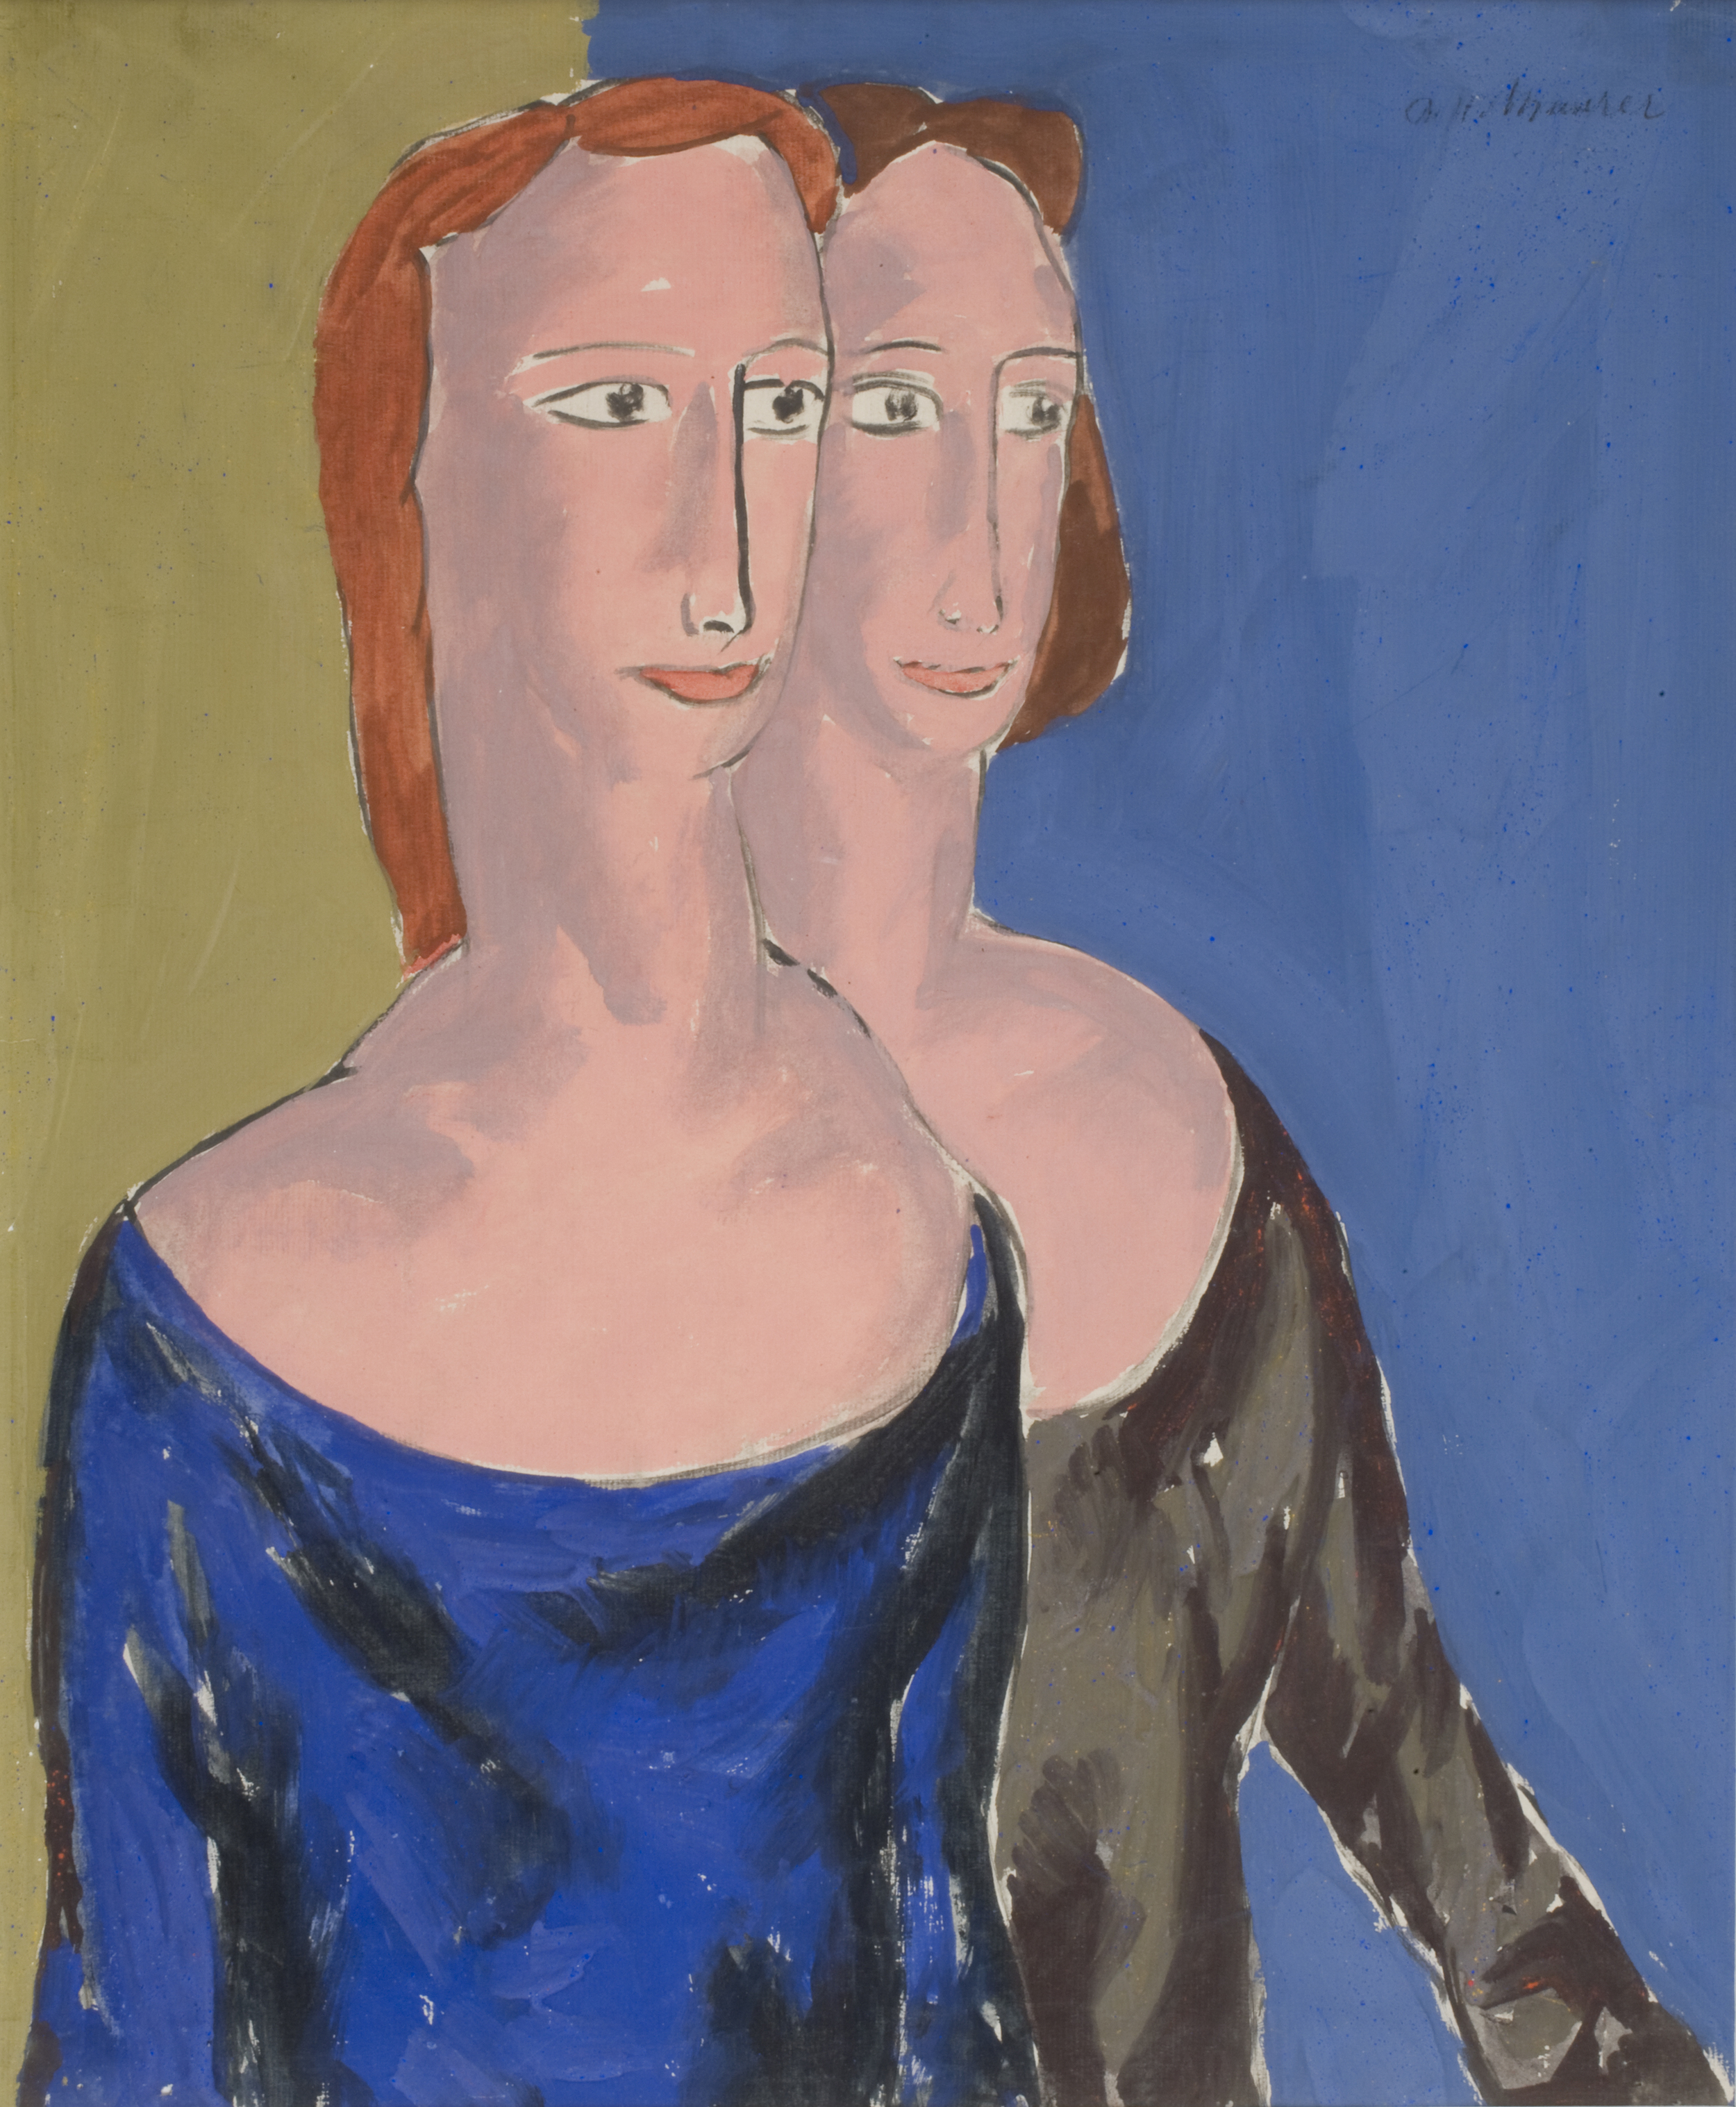 Painting of two women with red hair overlapping, one wearing a blue dress and one wearing a black dress. Green background on left, blue on left